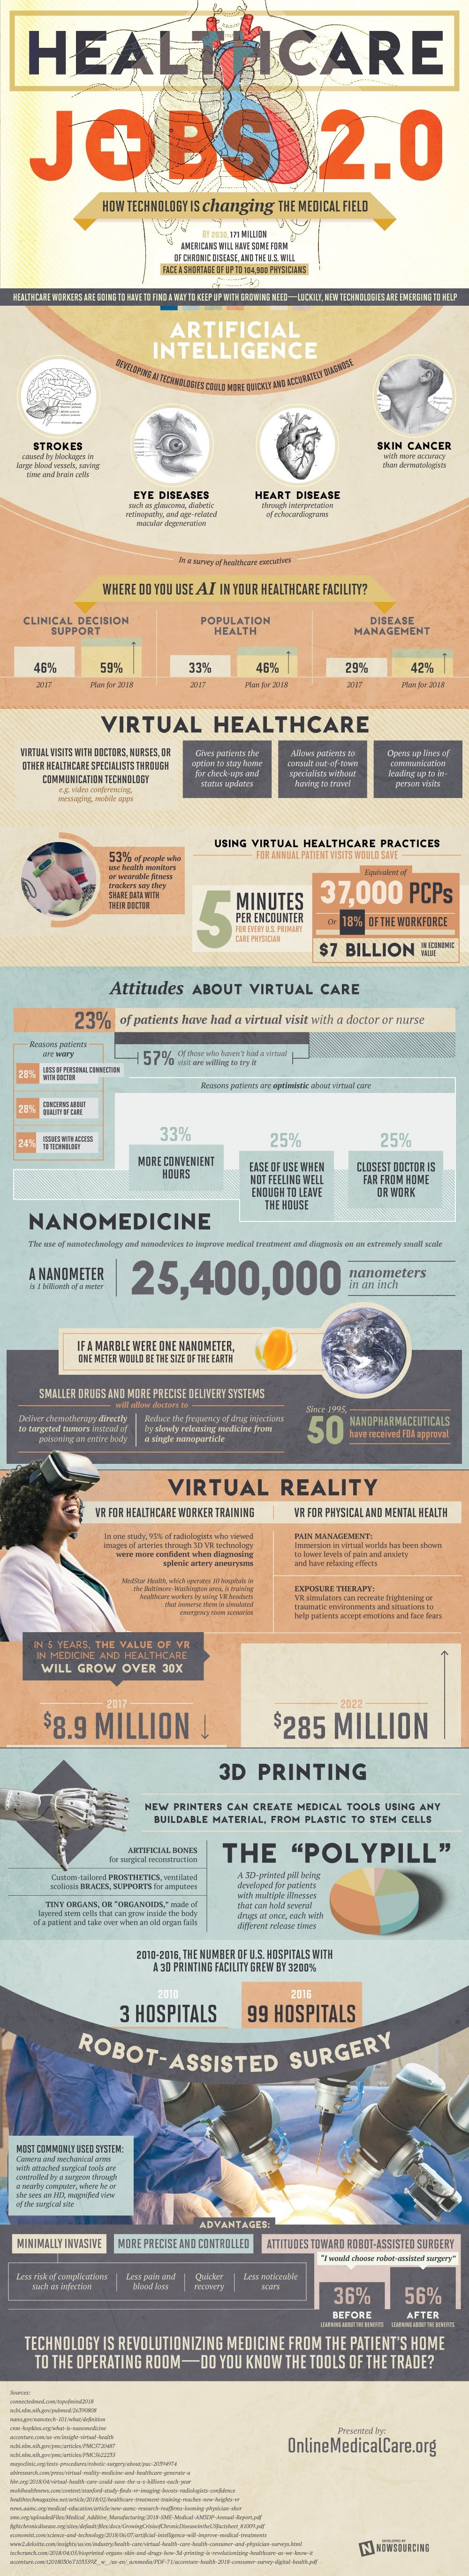 Thanks to advances in medical technology, the healthcare jobs of tomorrow may require applicants well-versed in virtual reality, artificial intelligence, 3D printing, and more, as outlined in this infographic.